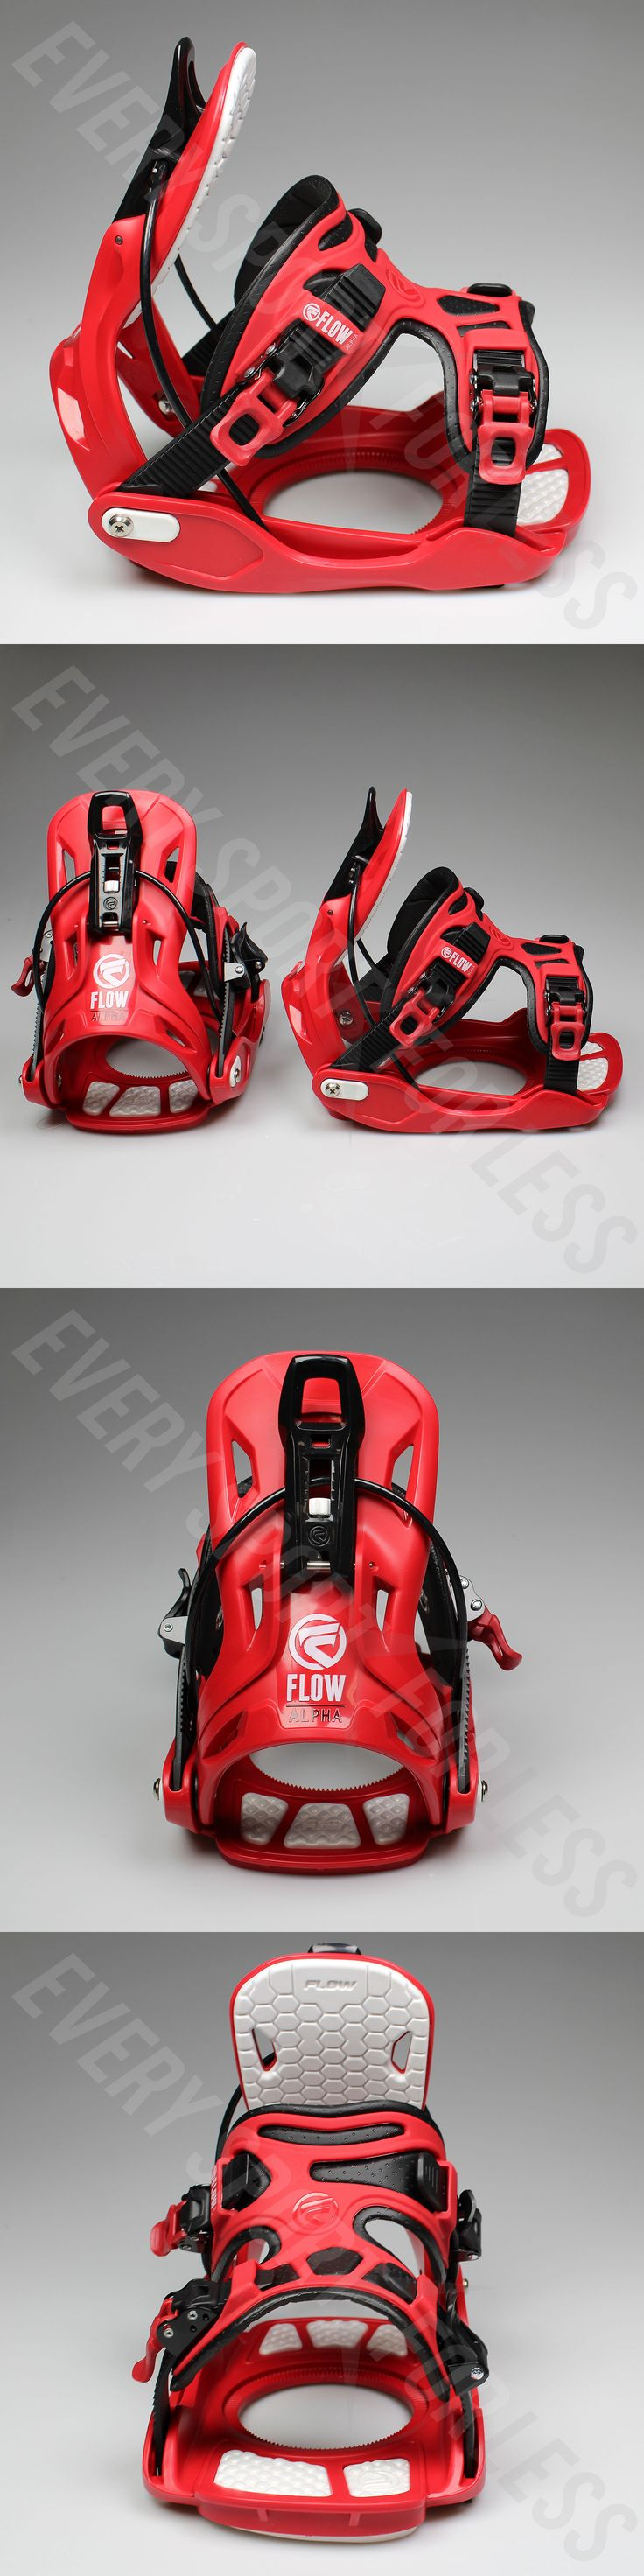 Bindings 21248: New Flow Alpha Exo-Fit Snowboard Bindings - Red -> BUY IT NOW ONLY: $159.99 on eBay!